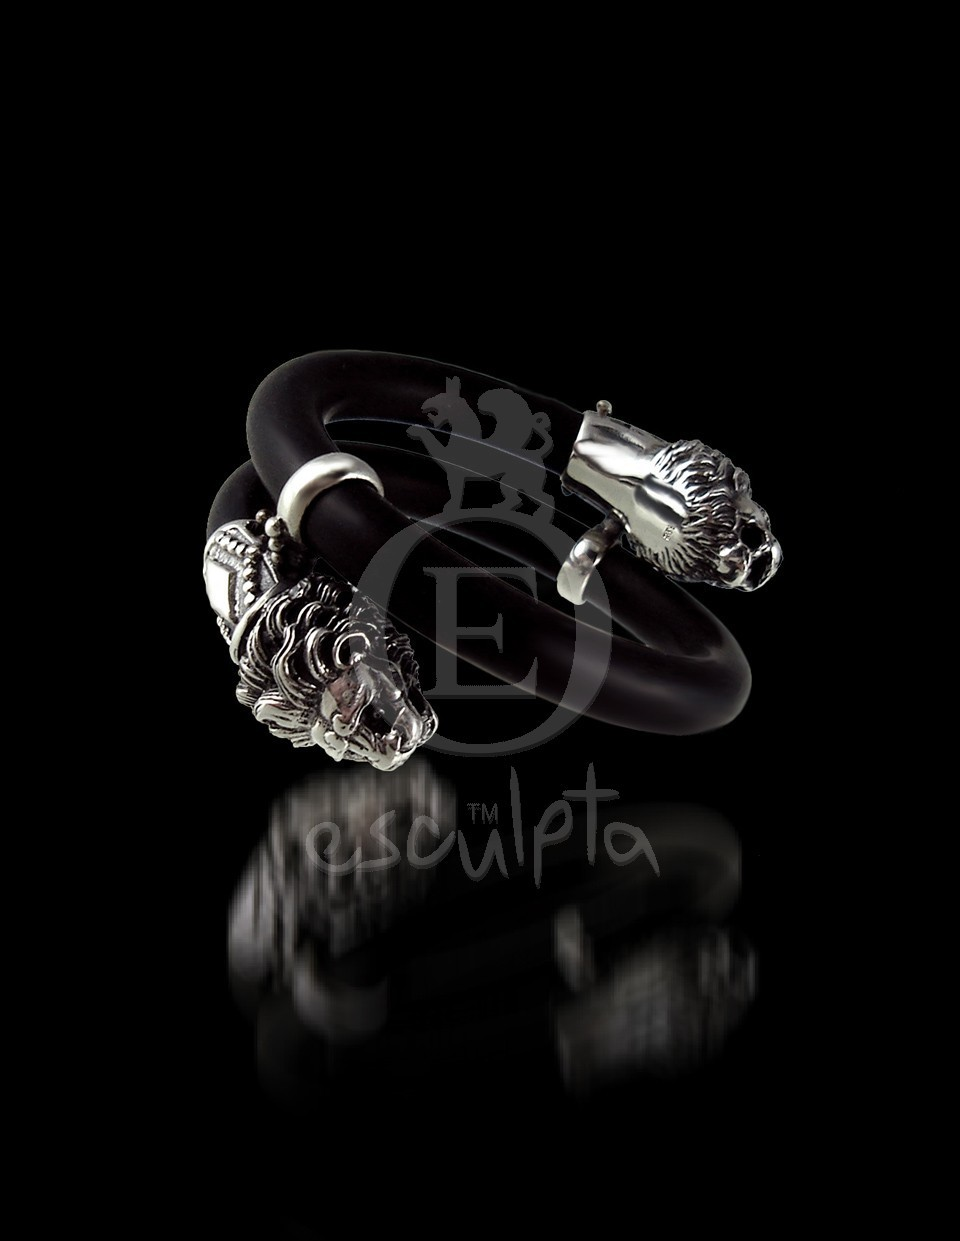 Decorative Cock Ring Le Cockring Ii Lion The King Of Cock Rings Adjustable Size Fits All